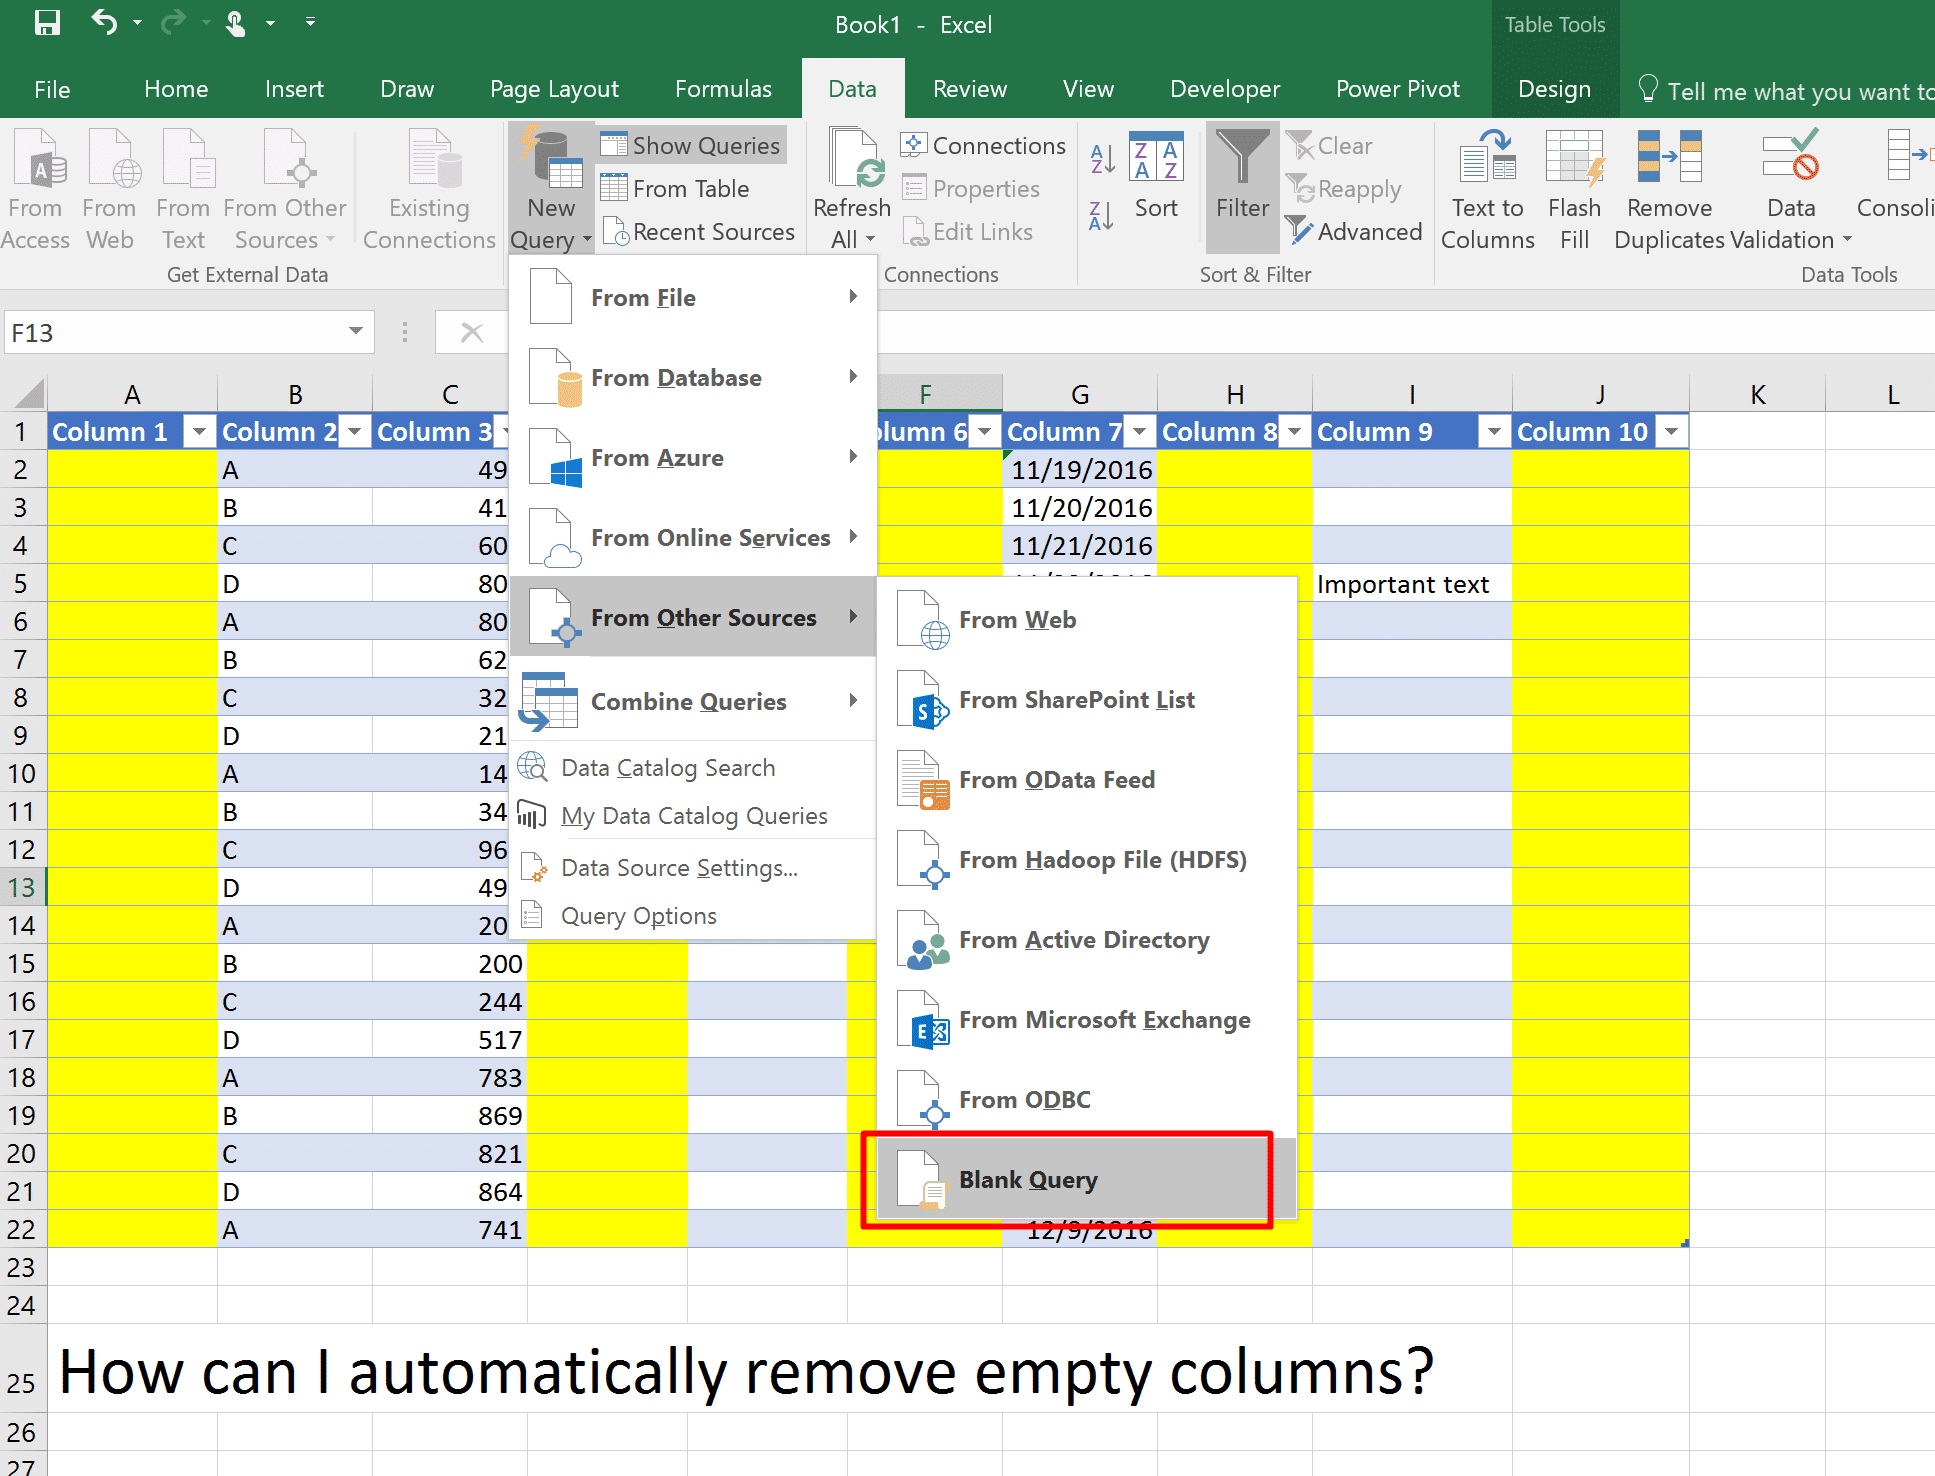 We start with a blank query to remove empty columns and rows from a table in Excel using Power Query